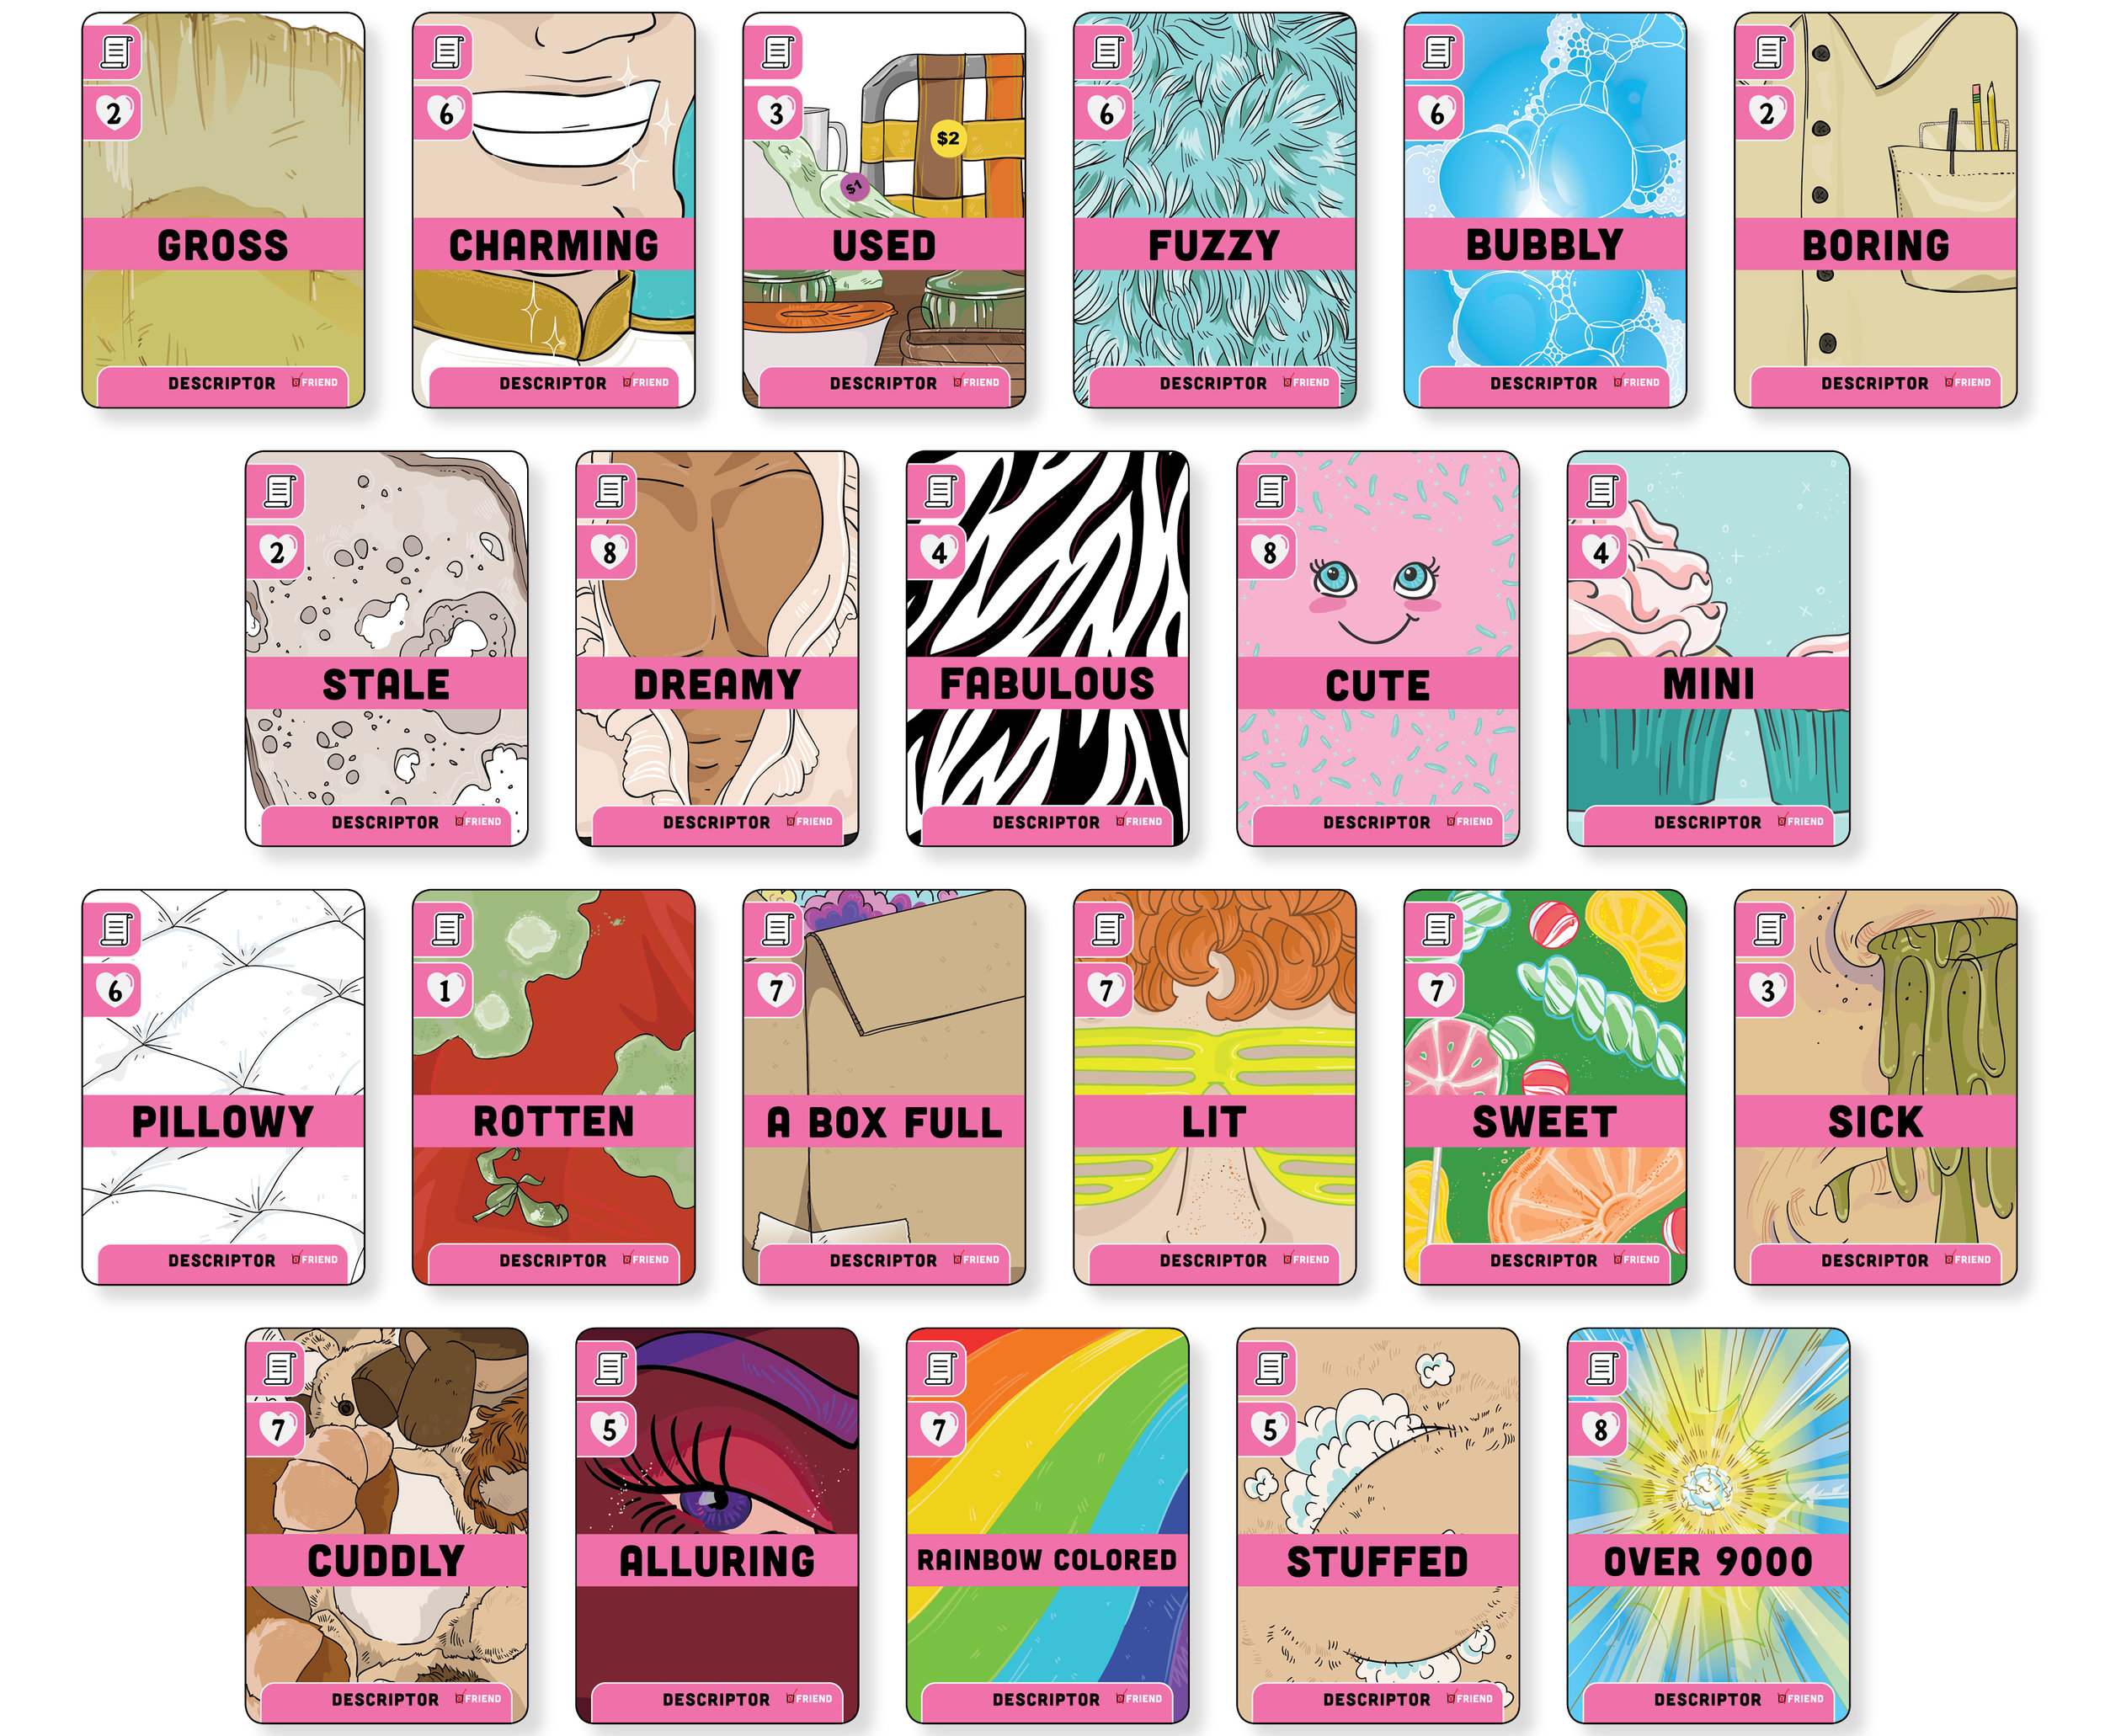 Final artwork for Unicorns Friend or Foe: Friend Edition included 36 different descriptor images.